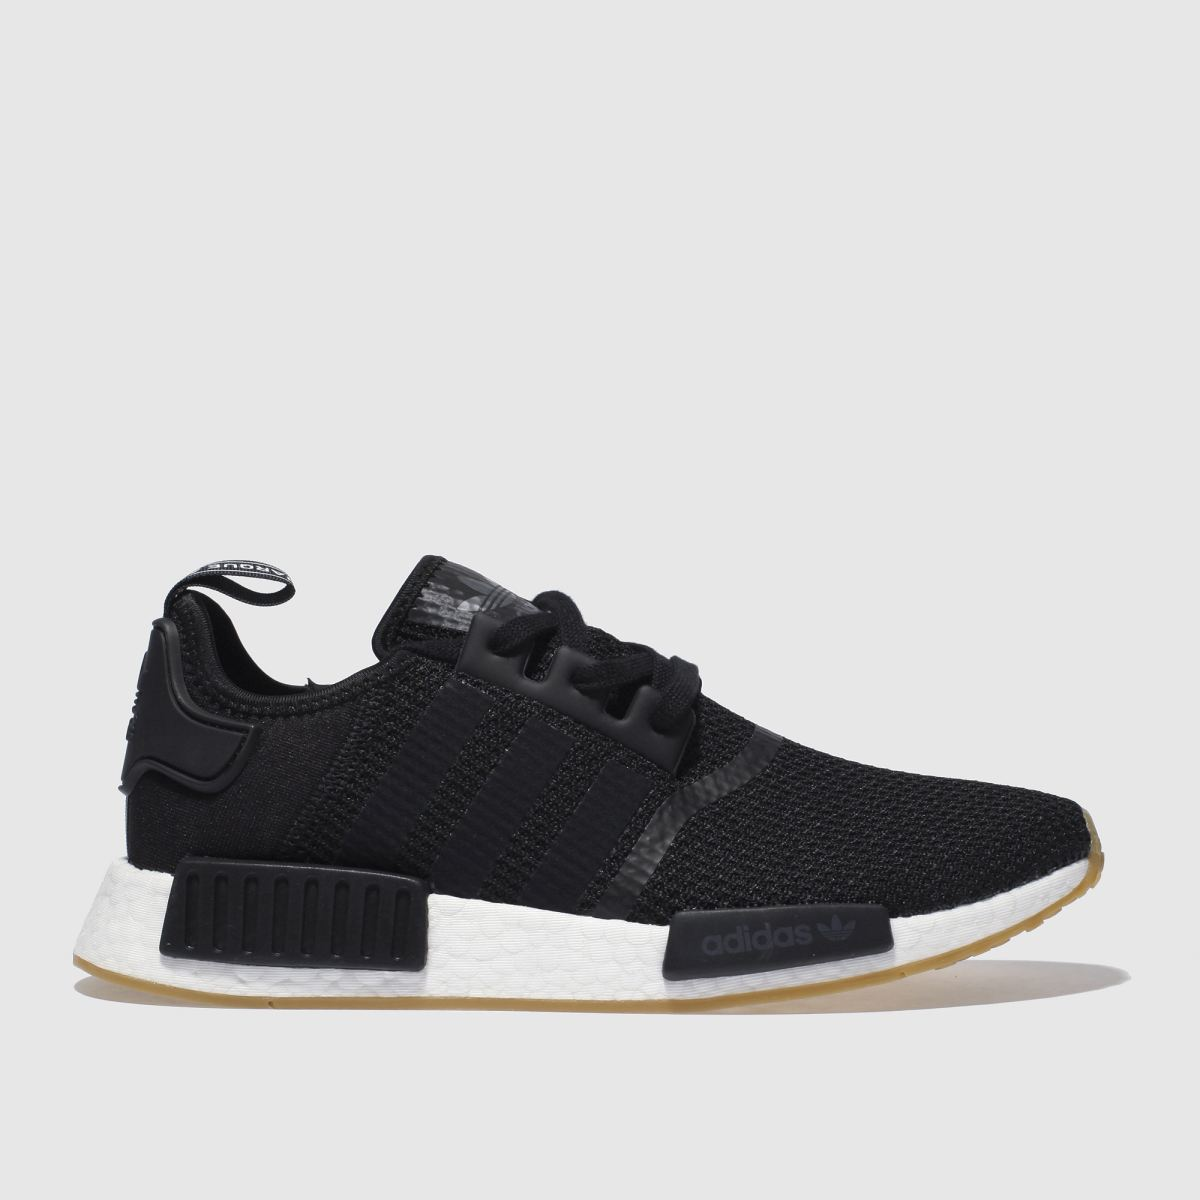 Adidas Black Nmd_r1 Trainers